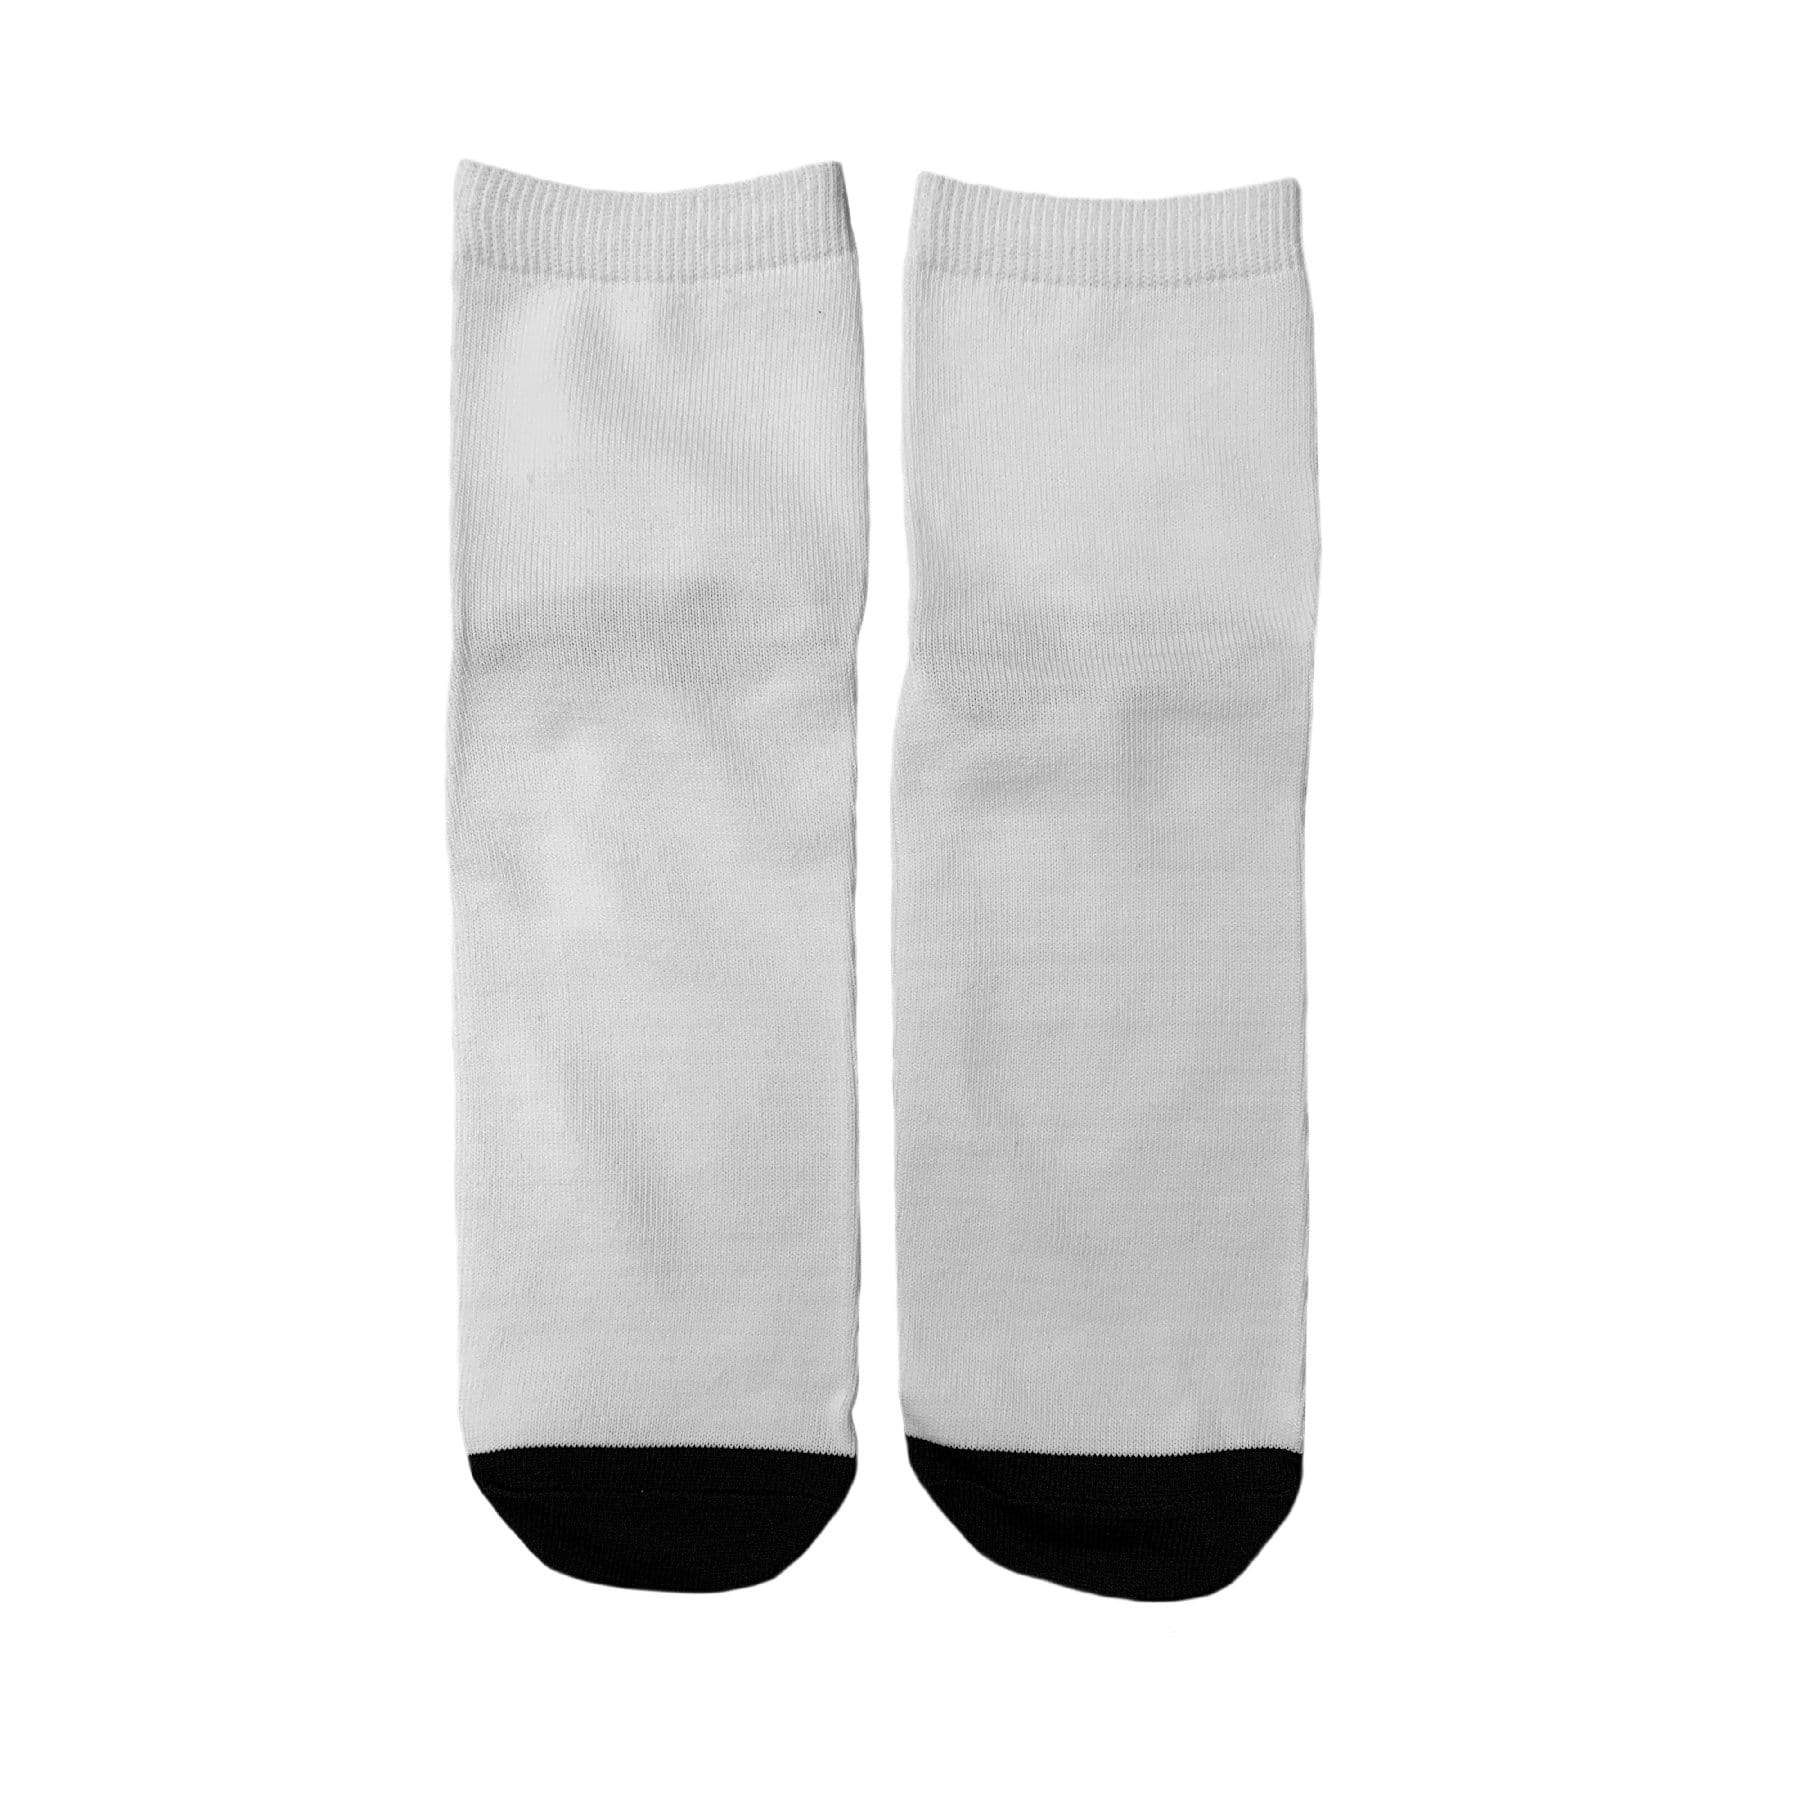 Blank Ankle Dress Socks (Quarter Ankle Length)